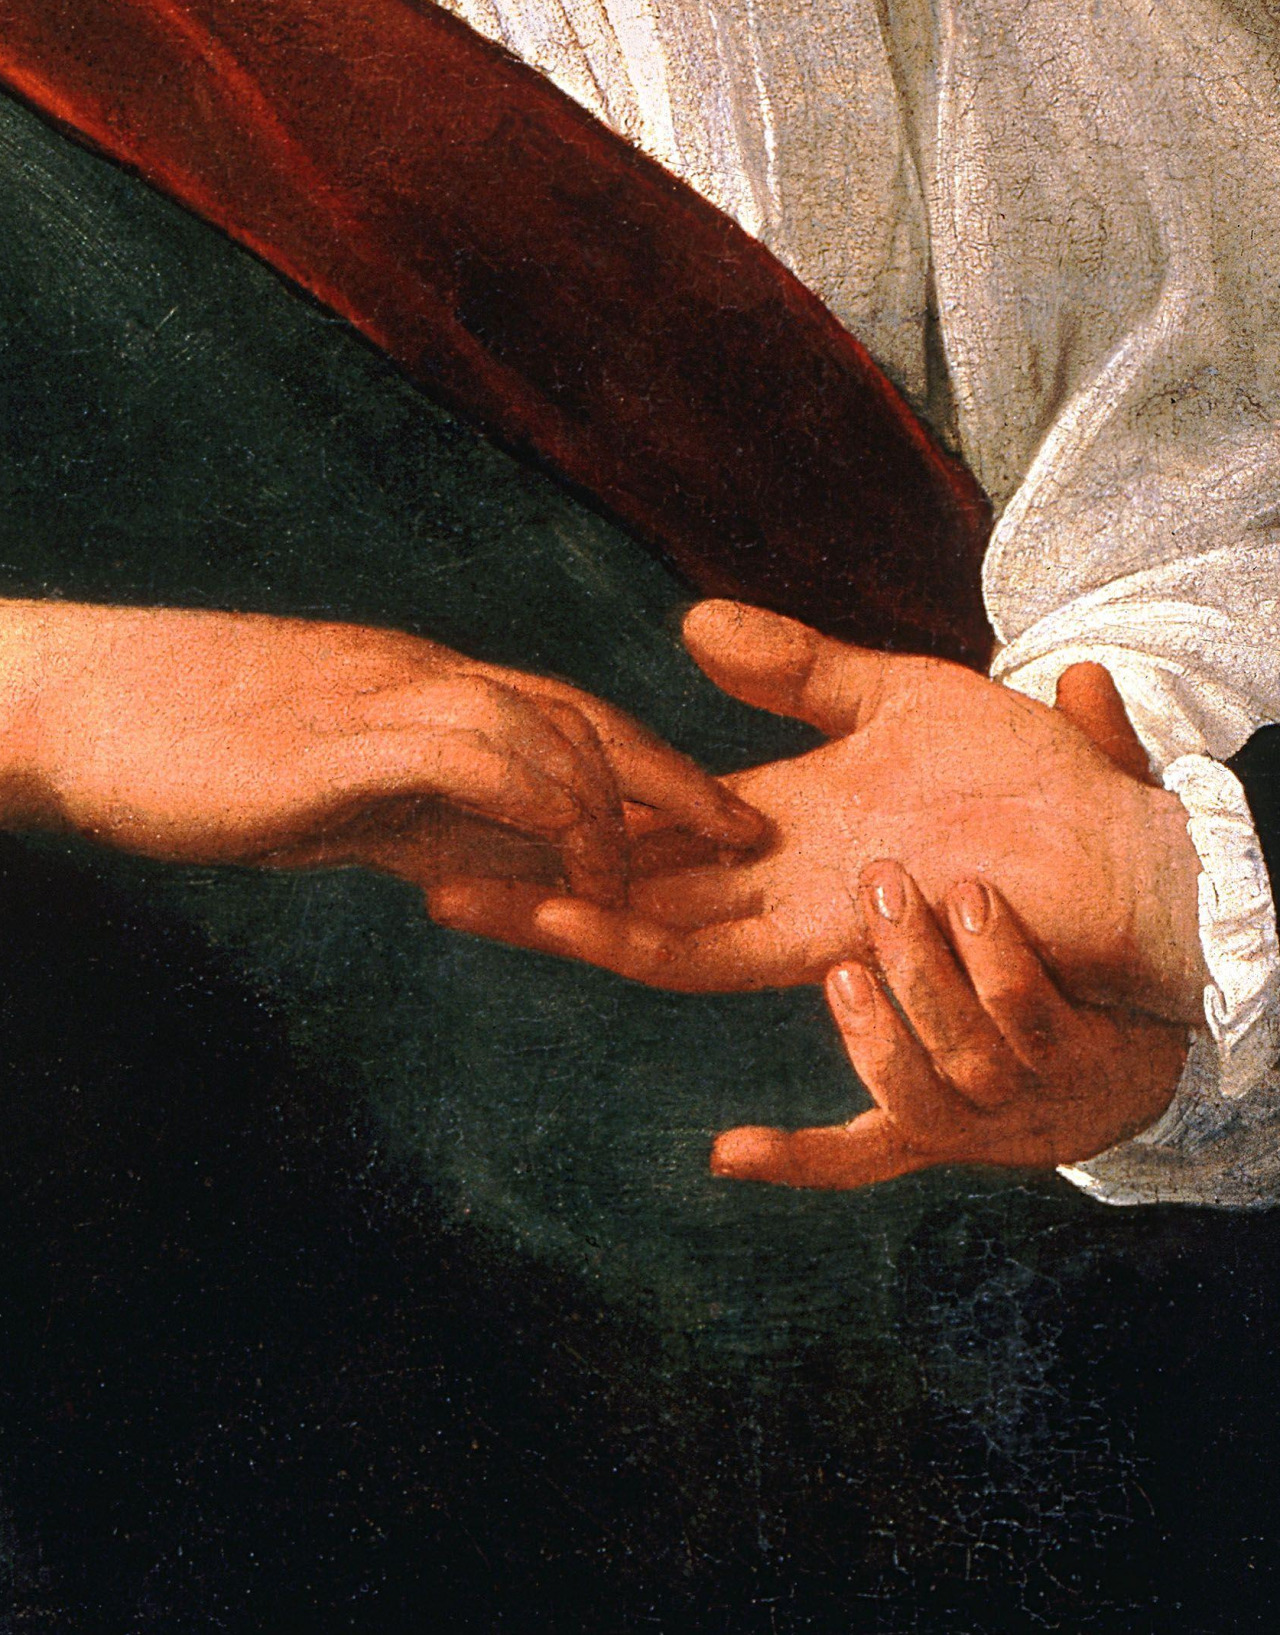 pro-fessional:  Caravaggio (1571-1610), The Fortune Teller (Second Ed. Detail)Oil on canvas, 1595